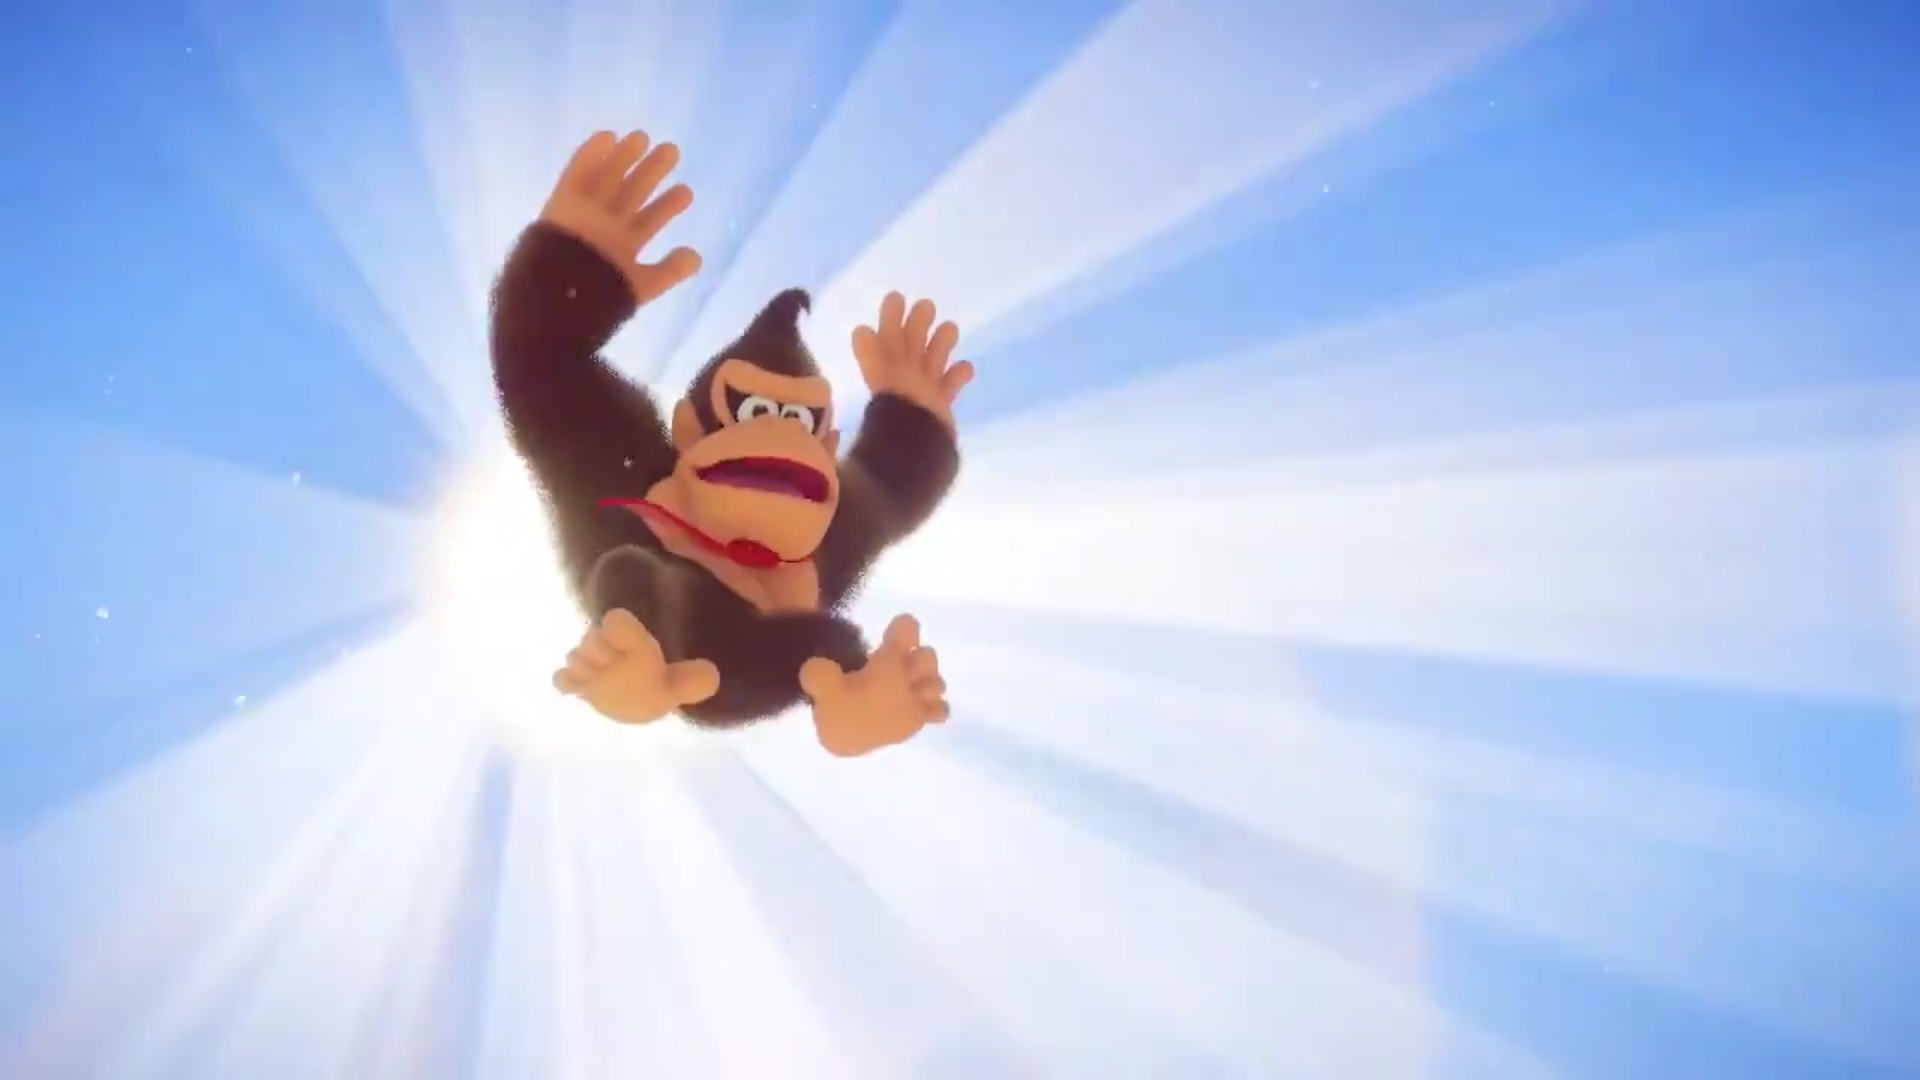 Mario + Rabbids' Donkey Kong DLC looks pretty legit screenshot